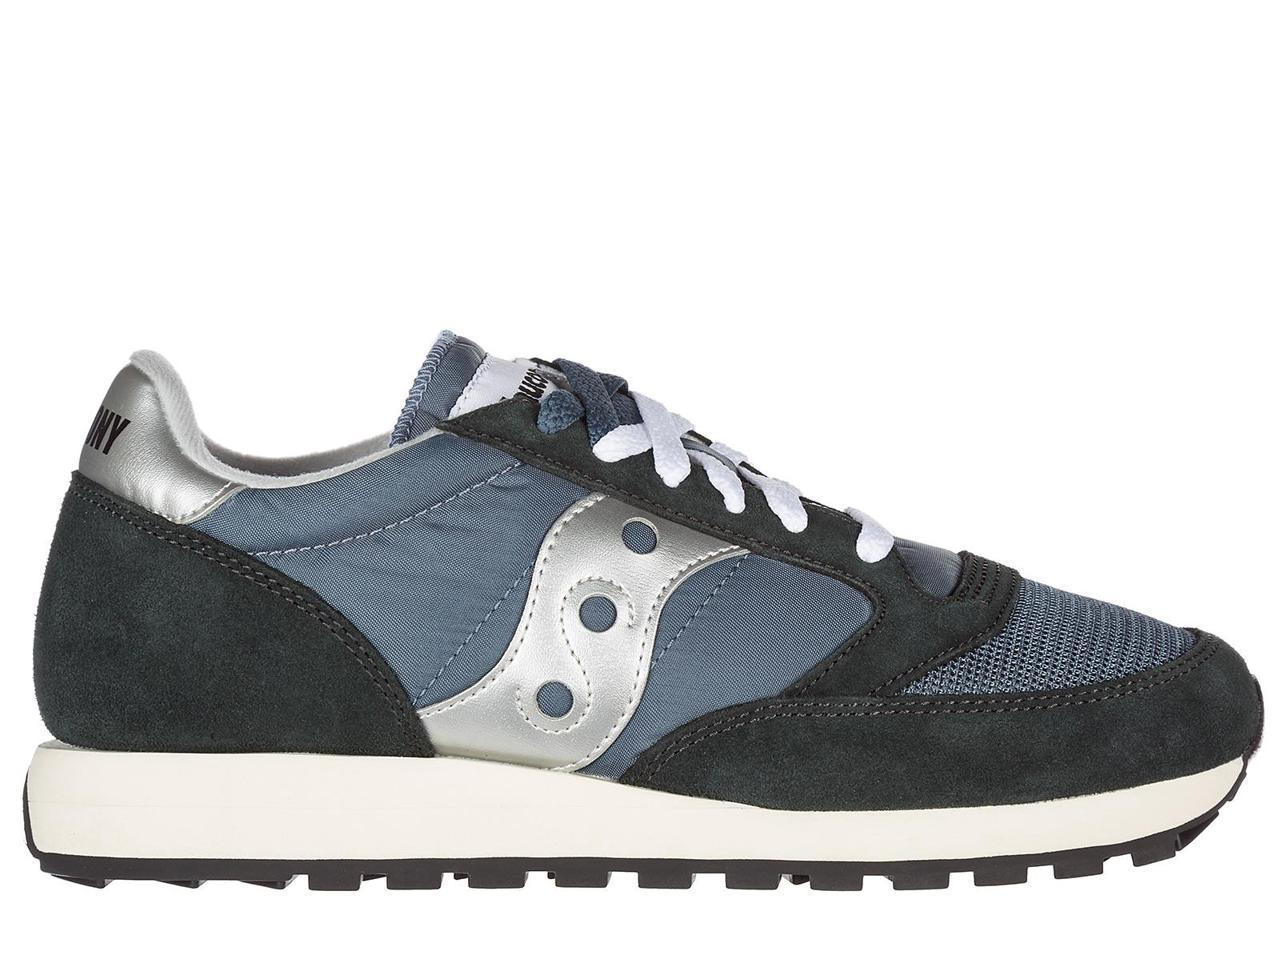 SAUCONY SNEAKERS MEN'S SHOES SUEDE TRAINERS SNEAKERS SAUCONY JAZZ BLUE 73ae36